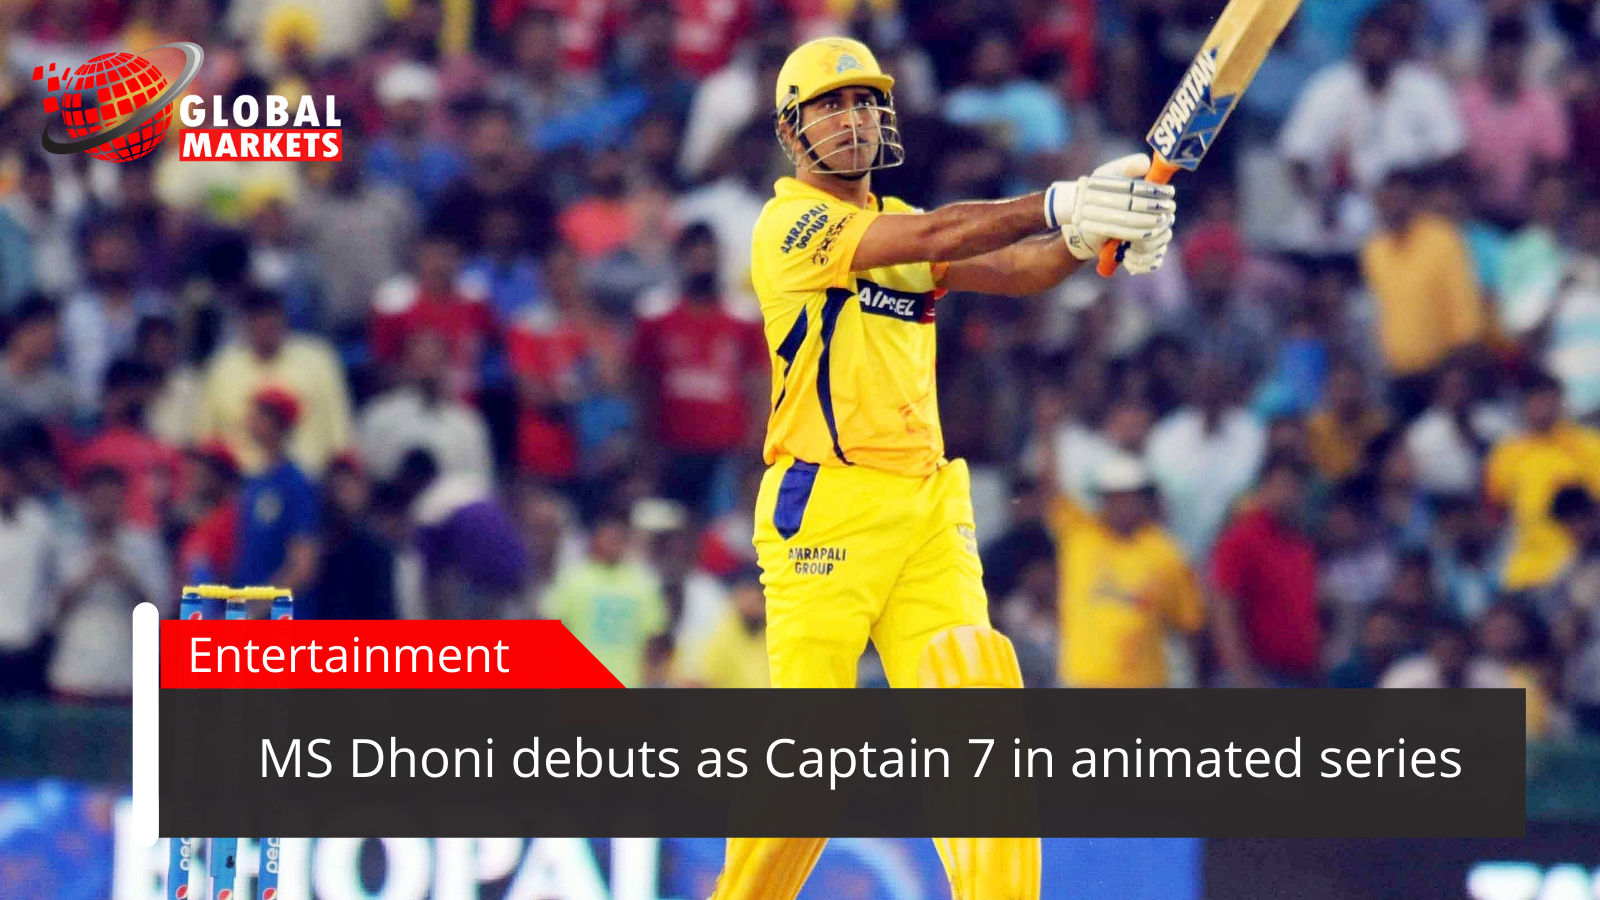 MS Dhoni debuts as Captain 7 in animated series